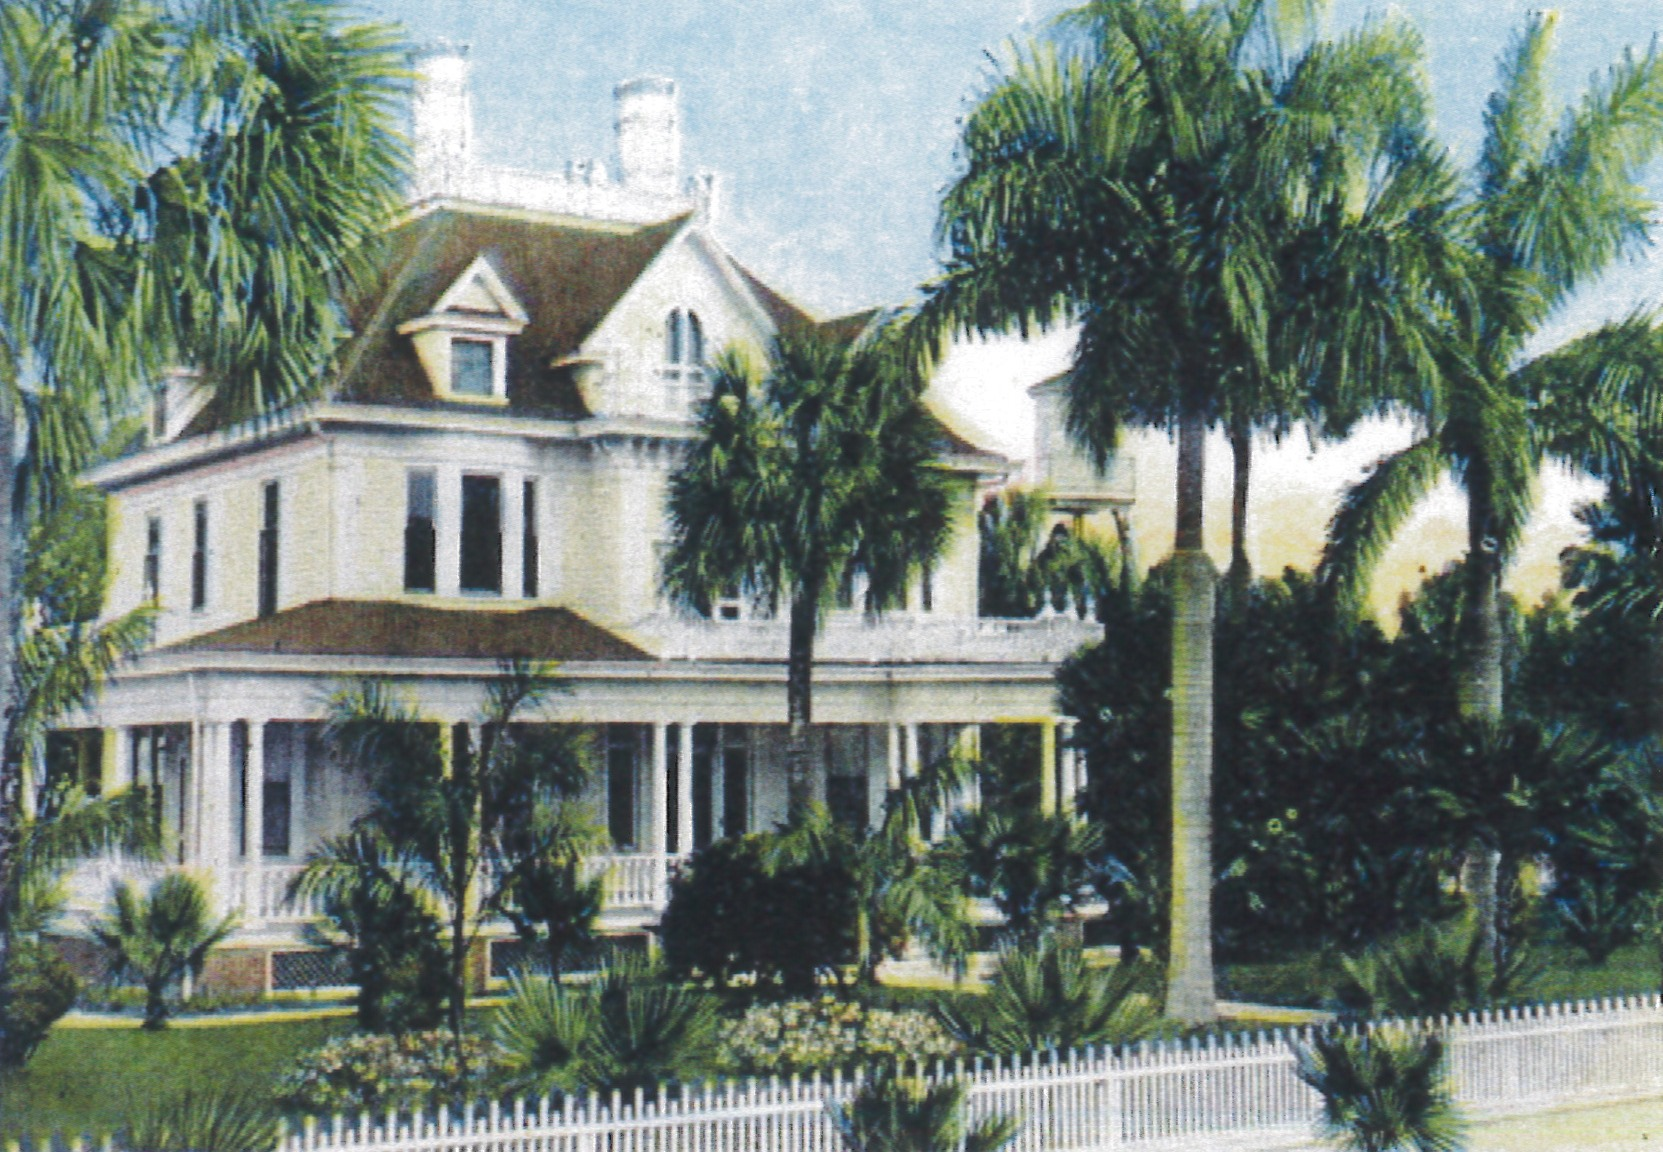 The Georgian Revival style Murphy-Burroughs Home (c. 1901) in Fort Myers, Florida